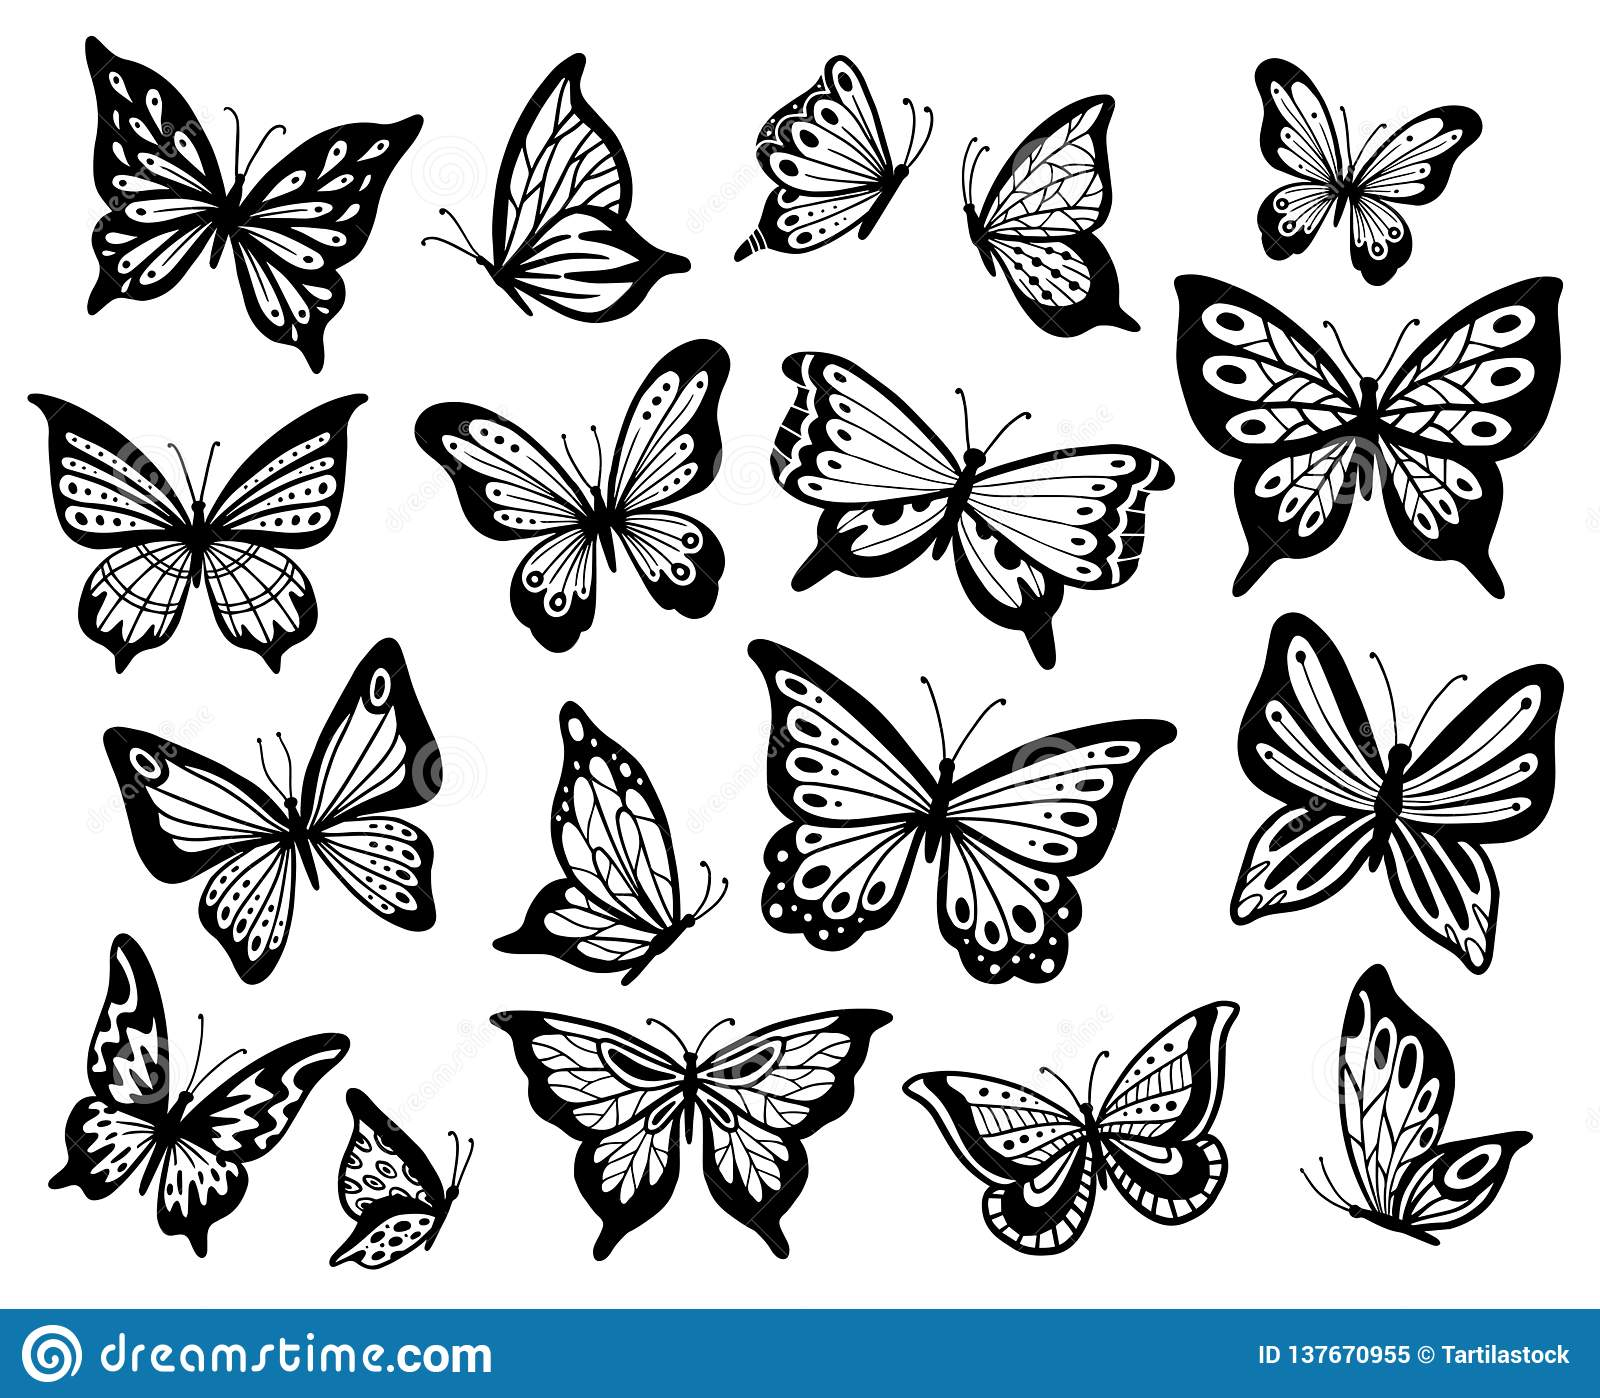 5461d9dcb Drawing butterflies. Stencil butterfly, moth wings and flying insects. Butterflies  tattoo sketch, fly insect black hand drawn engraving.